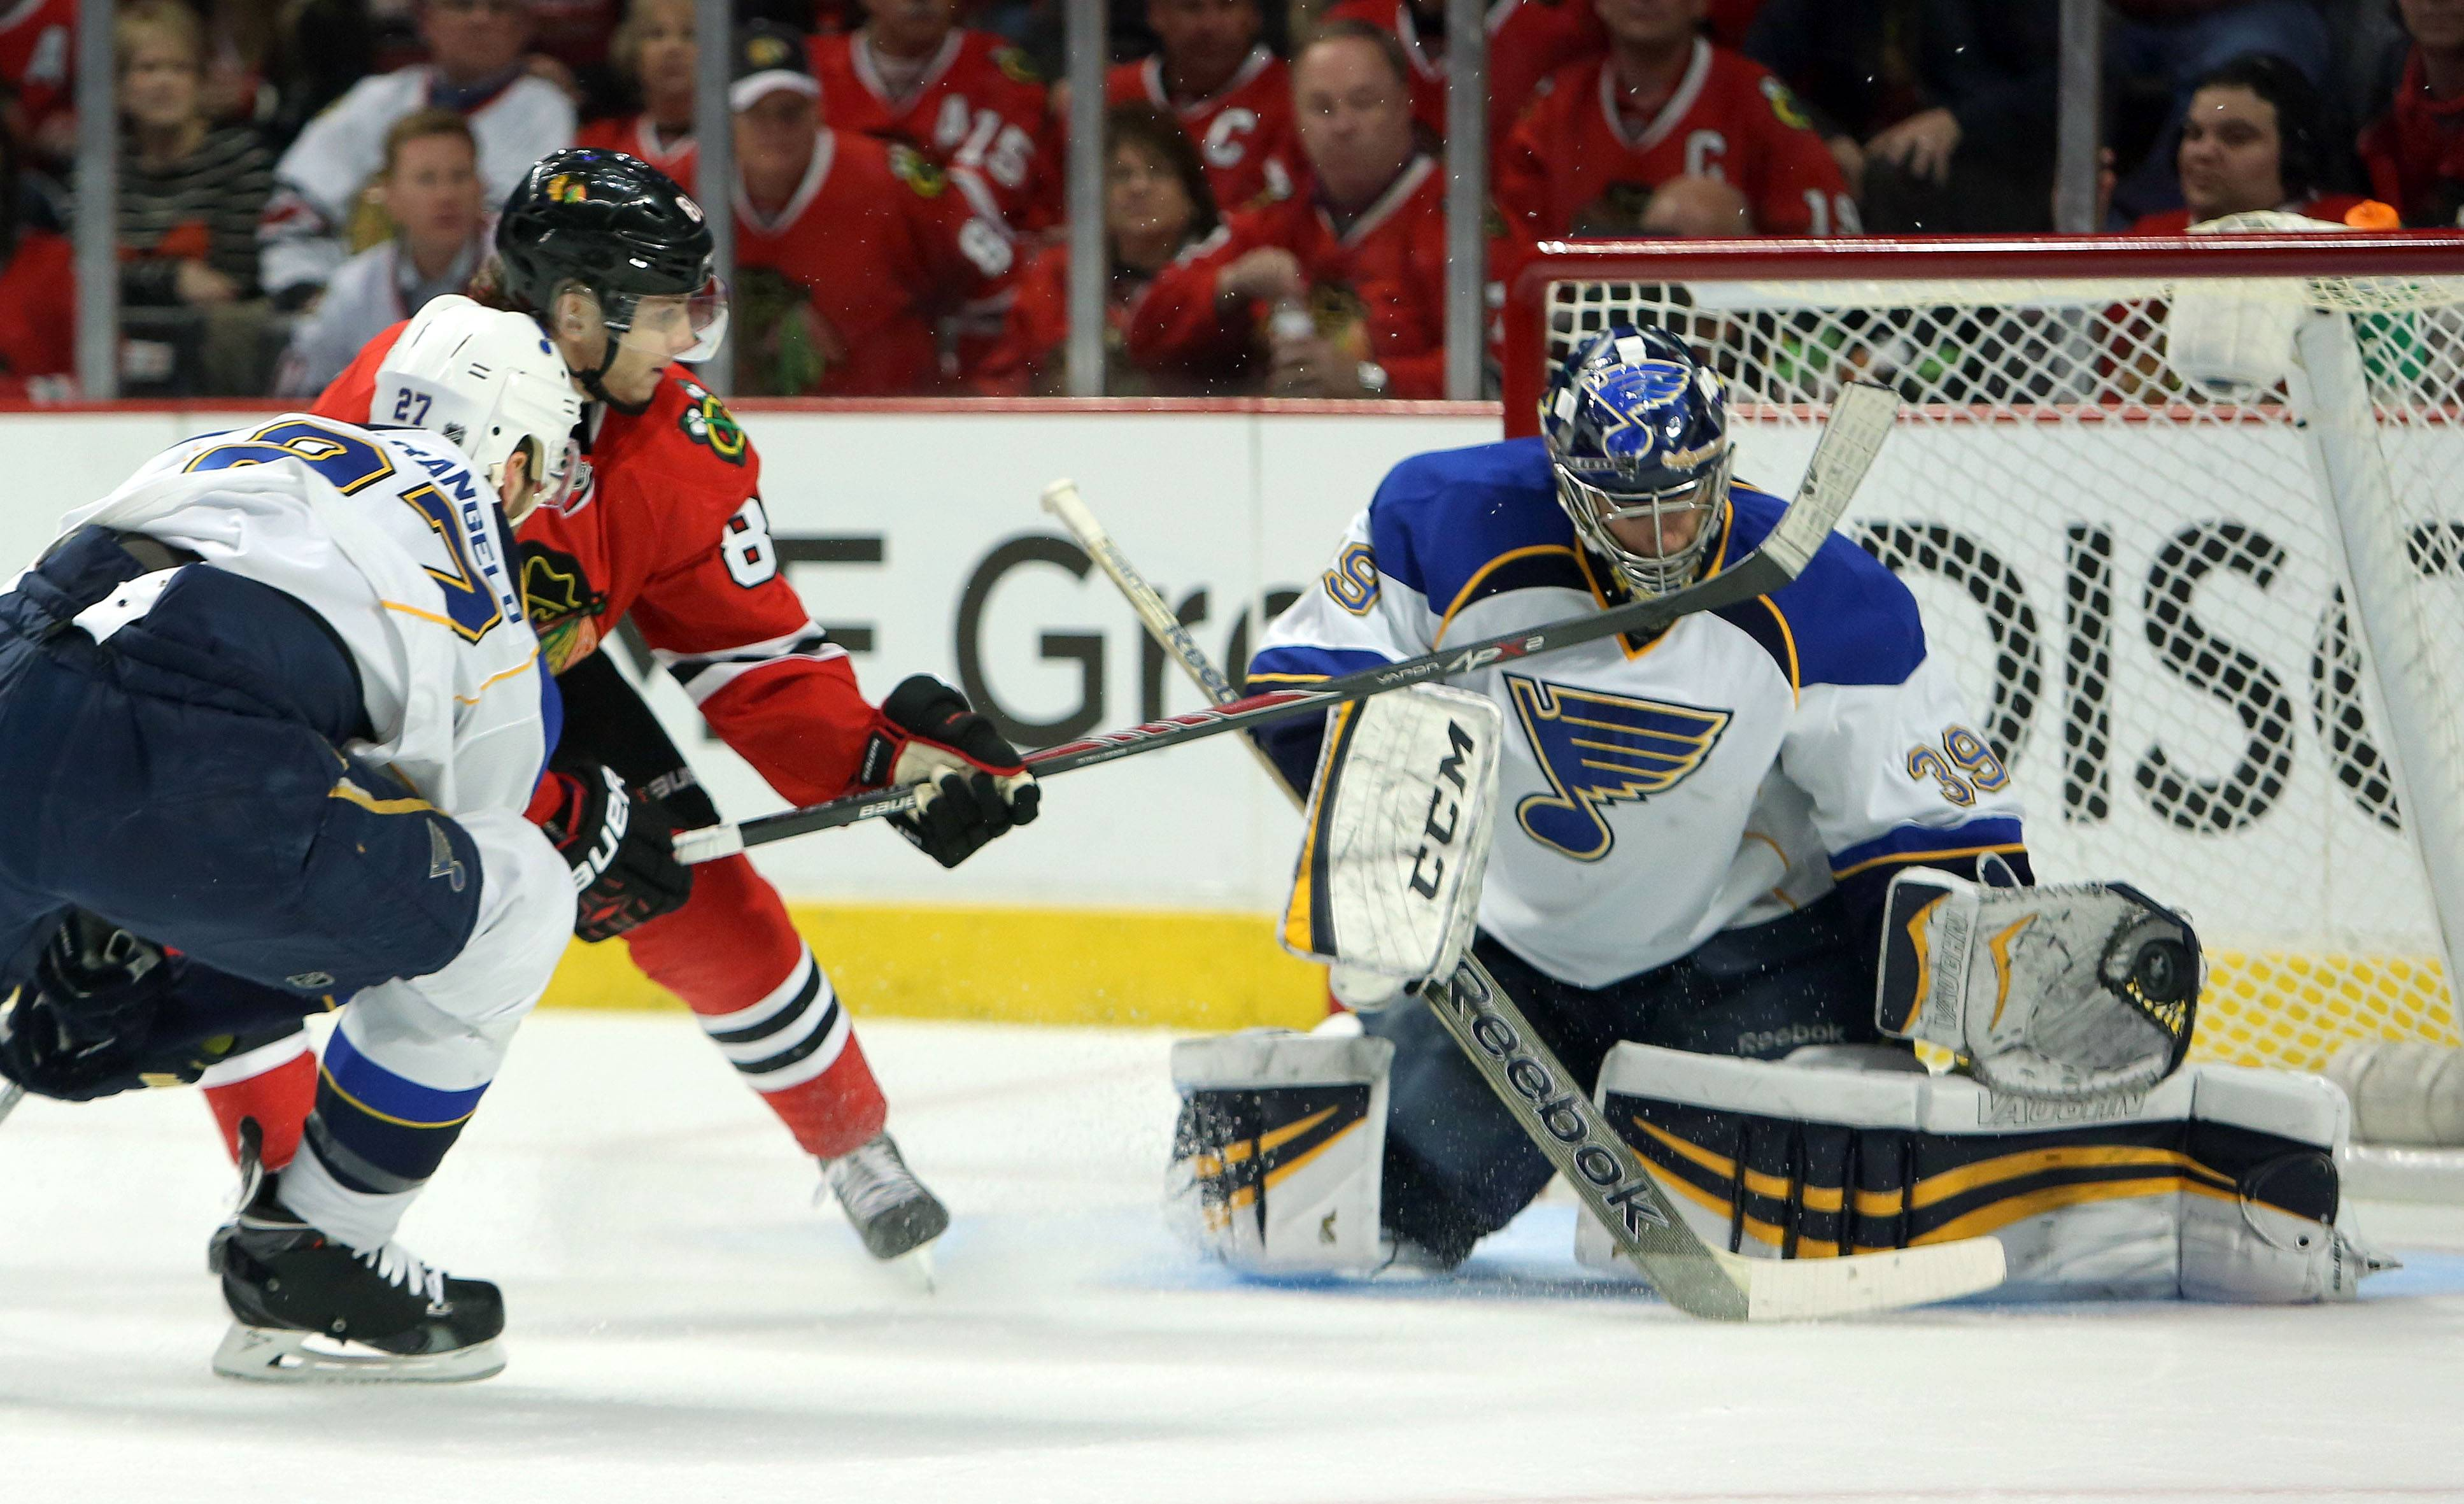 Chicago Blackhawks left wing Patrick Sharp and St. Louis Blues defenseman Roman Polak battle.